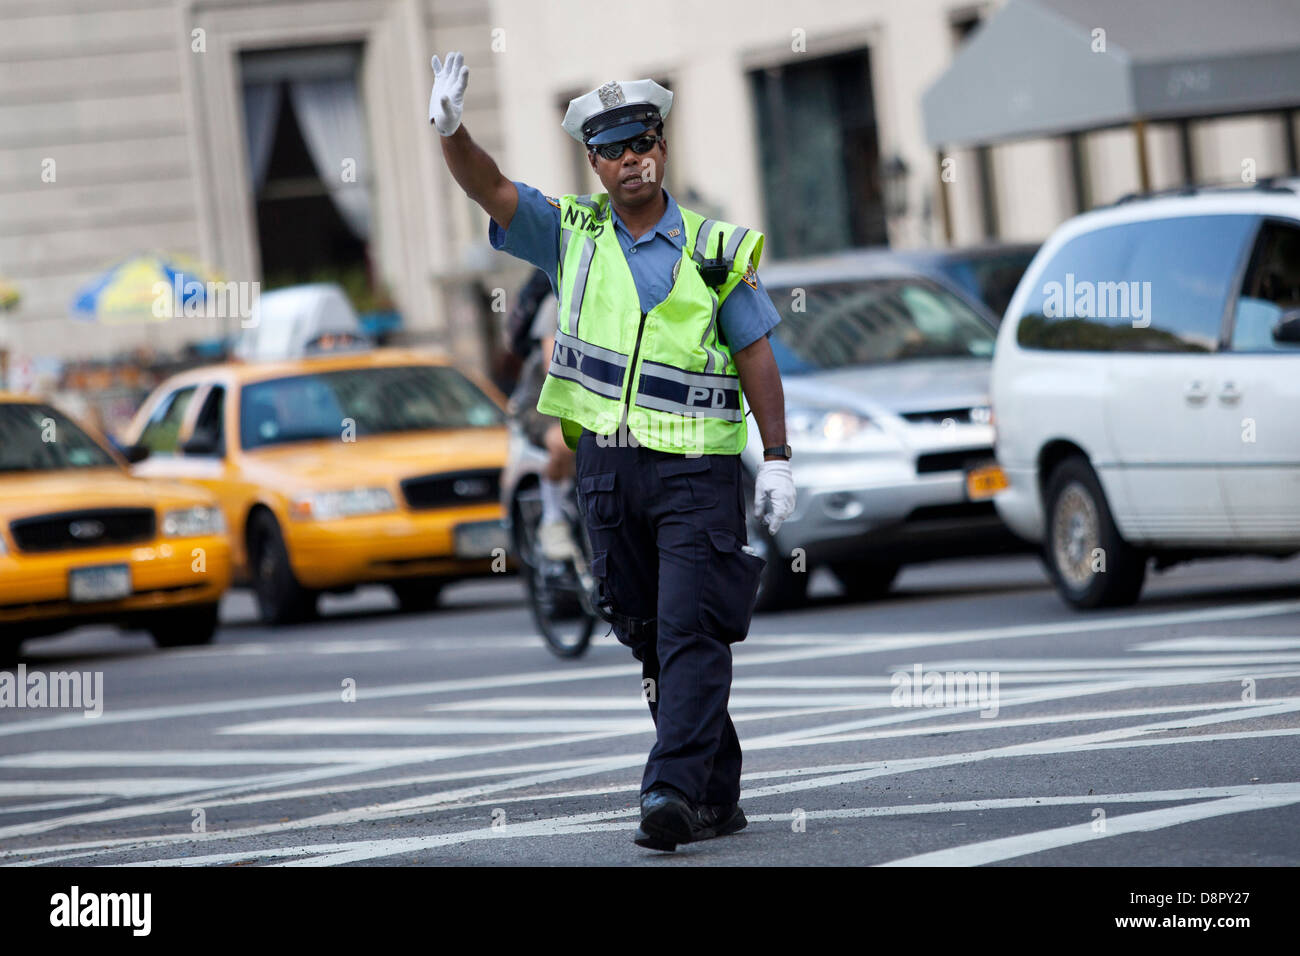 Traffic cop in New York - Stock Image